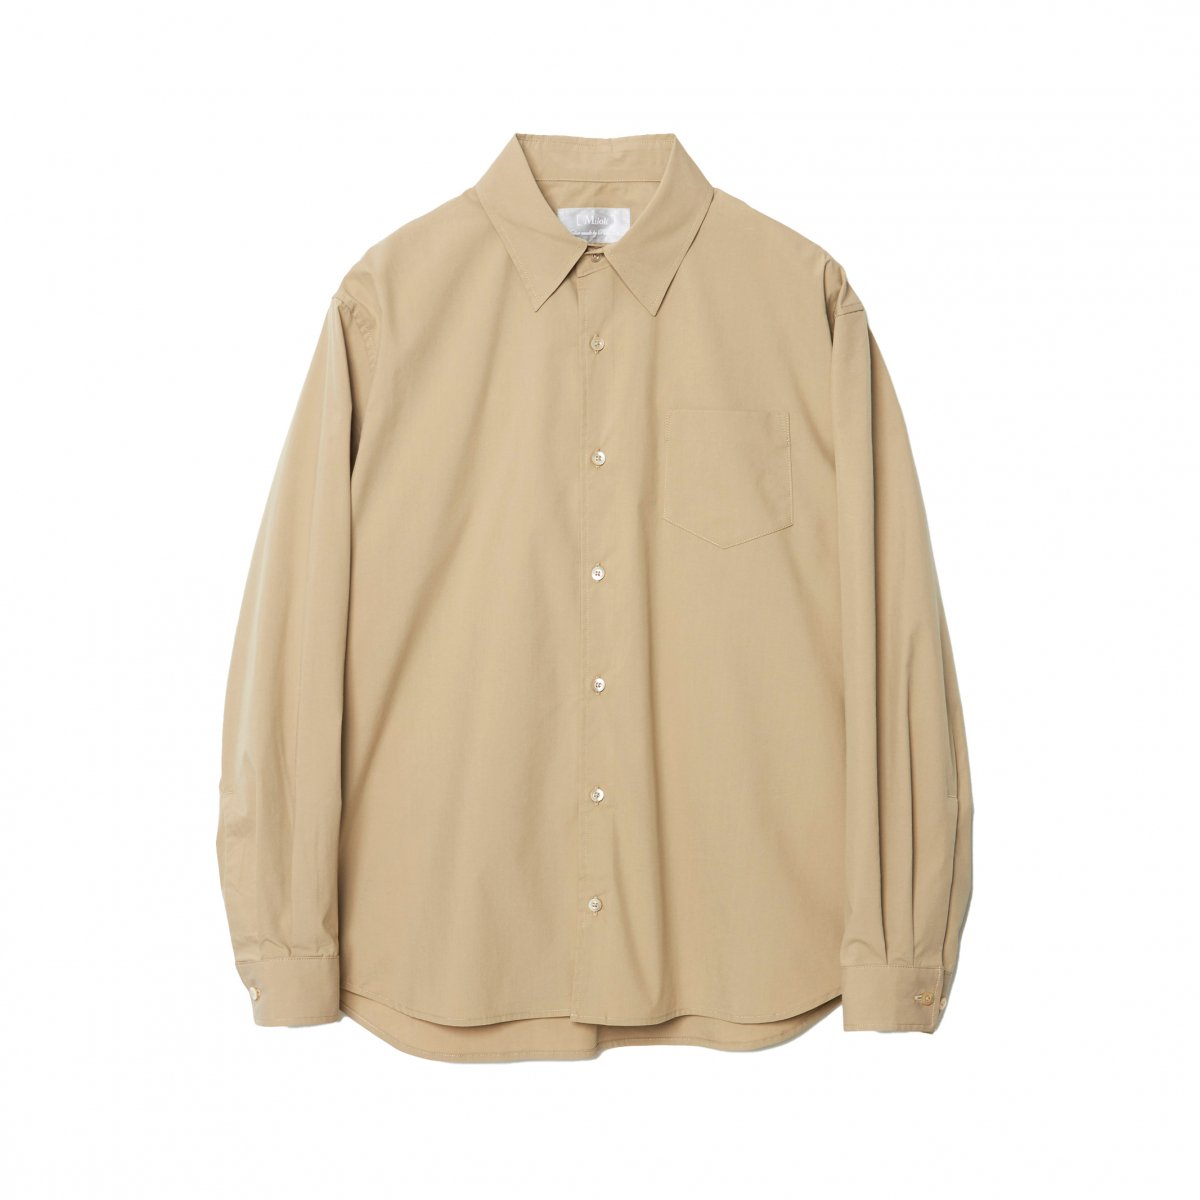 <img class='new_mark_img1' src='https://img.shop-pro.jp/img/new/icons5.gif' style='border:none;display:inline;margin:0px;padding:0px;width:auto;' />SOLOTEX ALL WEATHER COTTON THE SHIRT / BEIGE